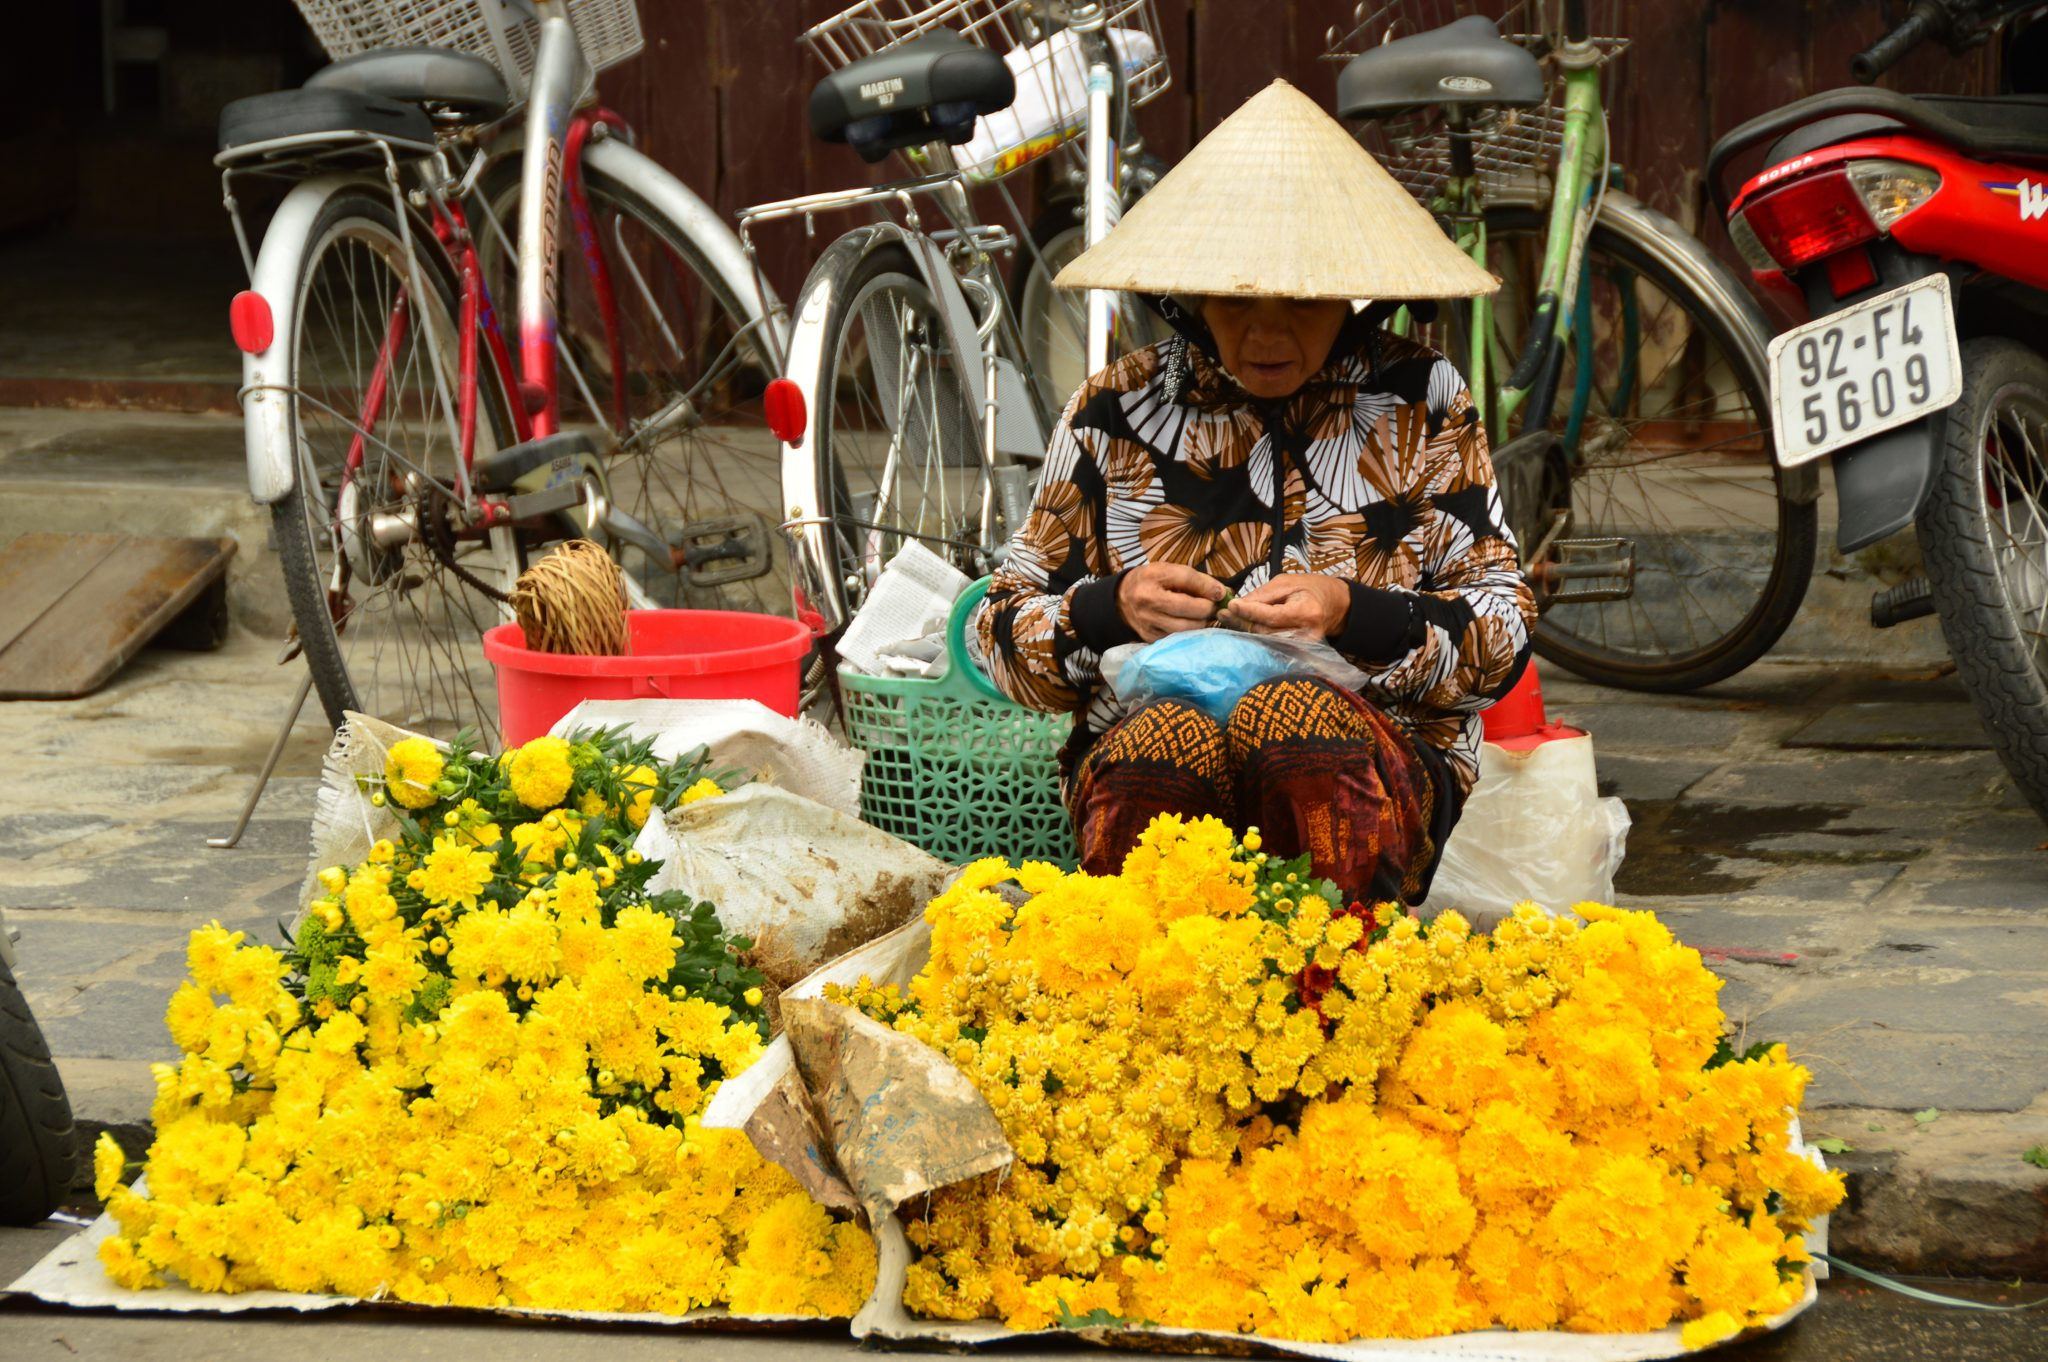 Hoi An Blog: What to do in Hoi An for 3 Days